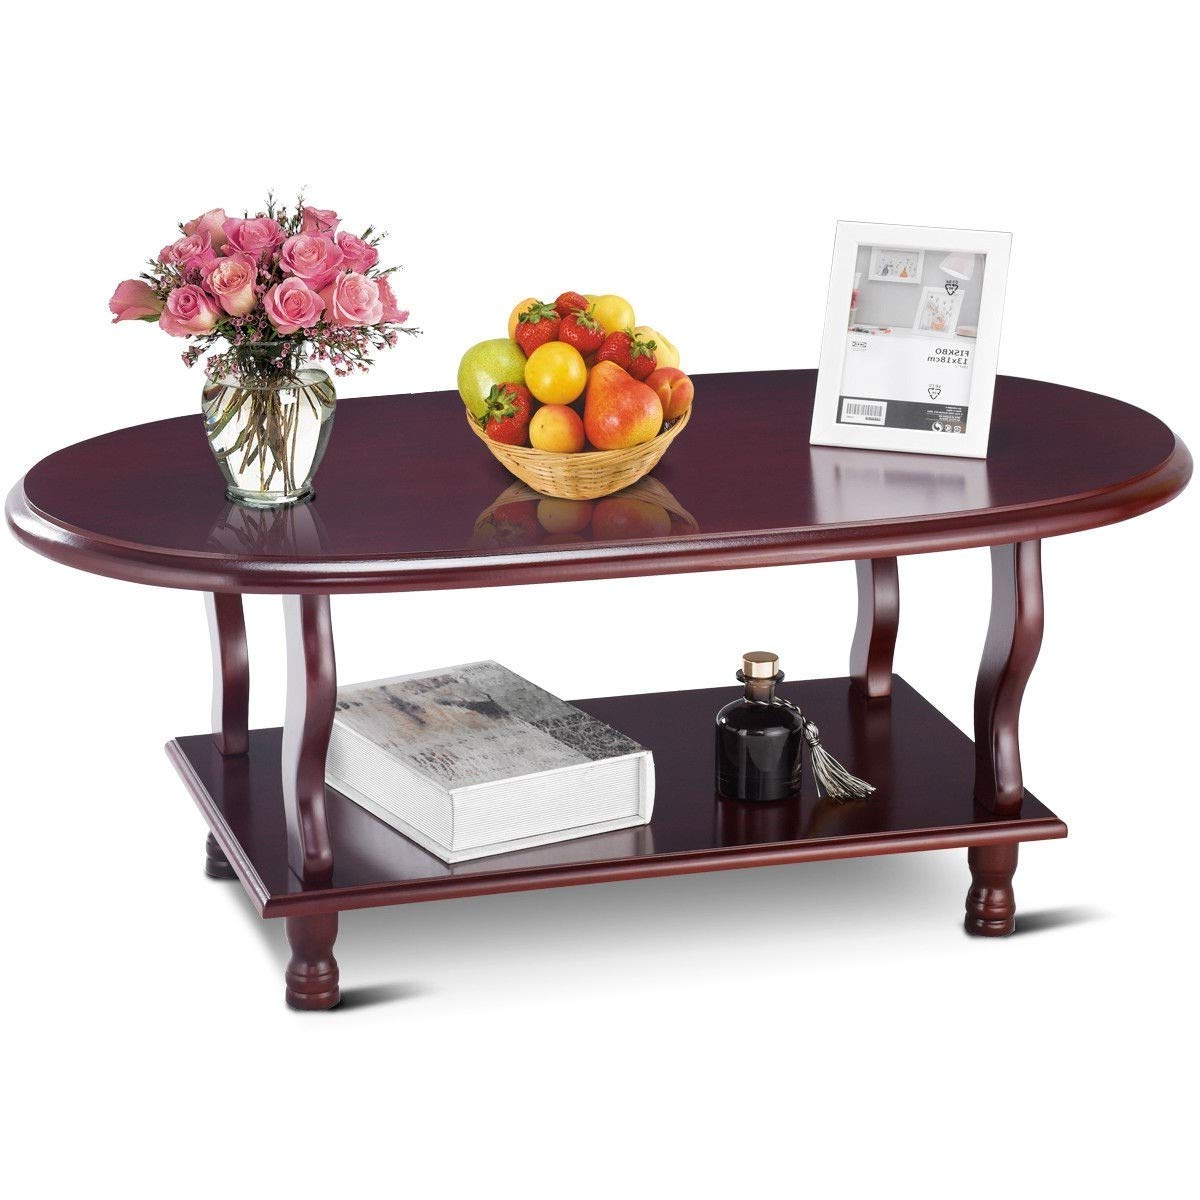 Cheap Oval Cherry Coffee Table, Find Oval Cherry Coffee Throughout Well Known Furniture Of America Crescent Dark Cherry Glass Top Oval Coffee Tables (View 4 of 20)